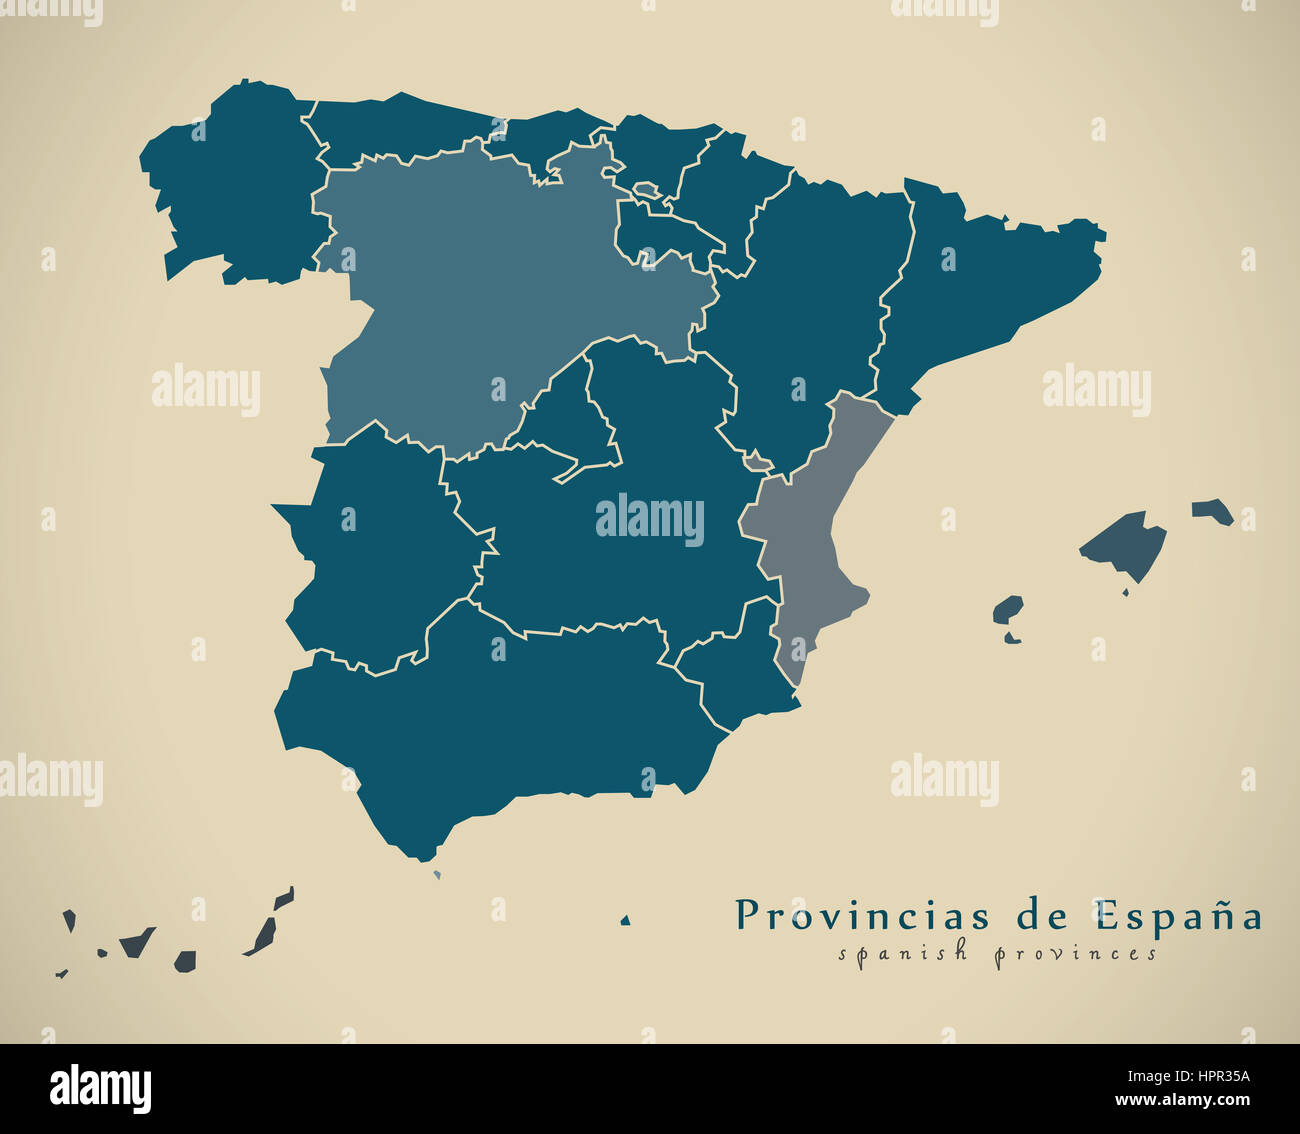 Spain Map Regions Stock Photos & Spain Map Regions Stock Images - Alamy